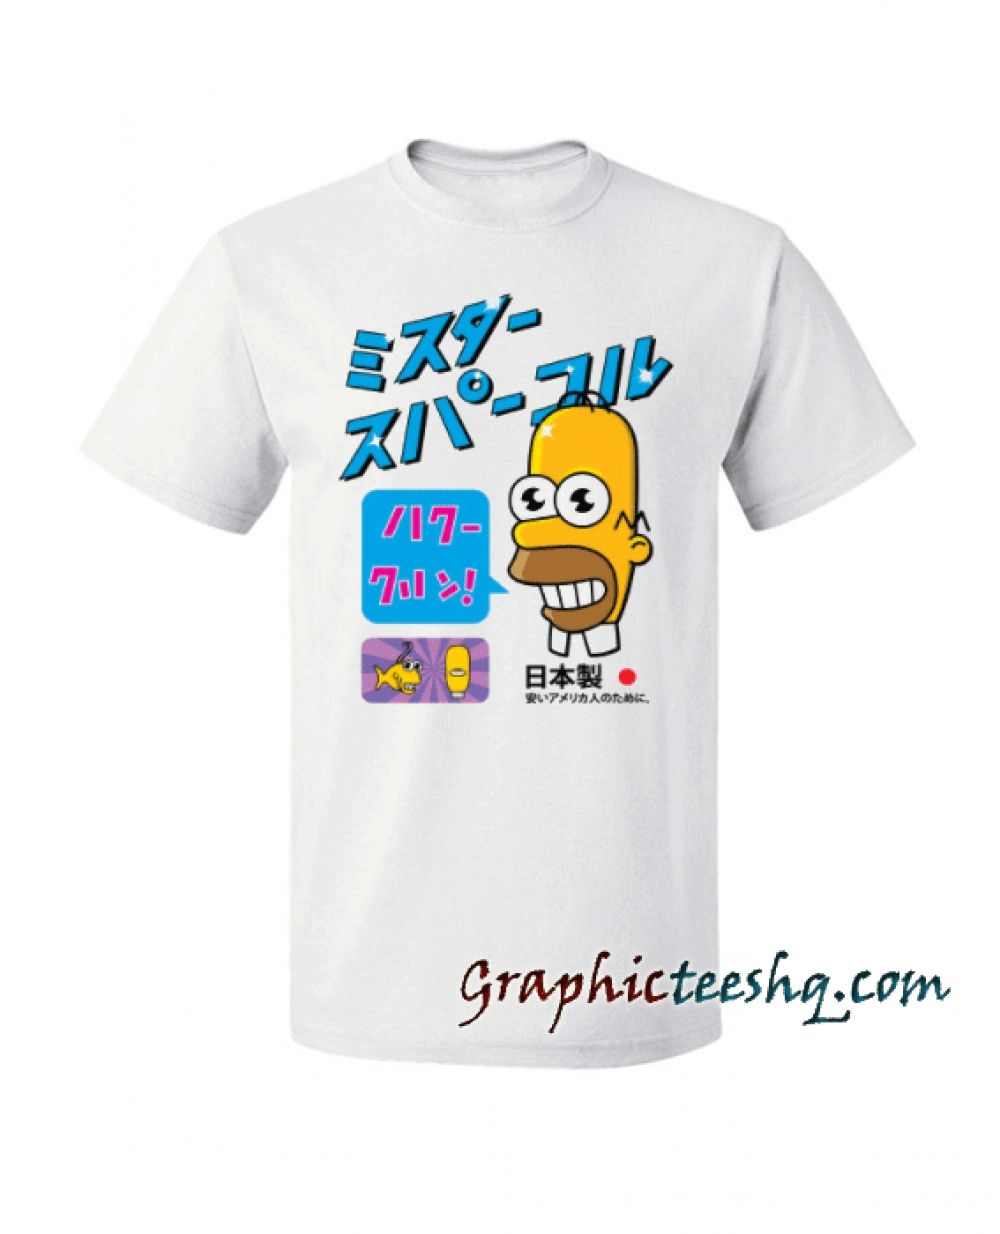 f3fbcce5 Mr. Sparkle Tee Shirt Price: 13.50 #style #fashion #tshirts #tee  #tshirtdesign#instafashion #black #cute #art #amazing#funny #webstagram  #lol #hot ...